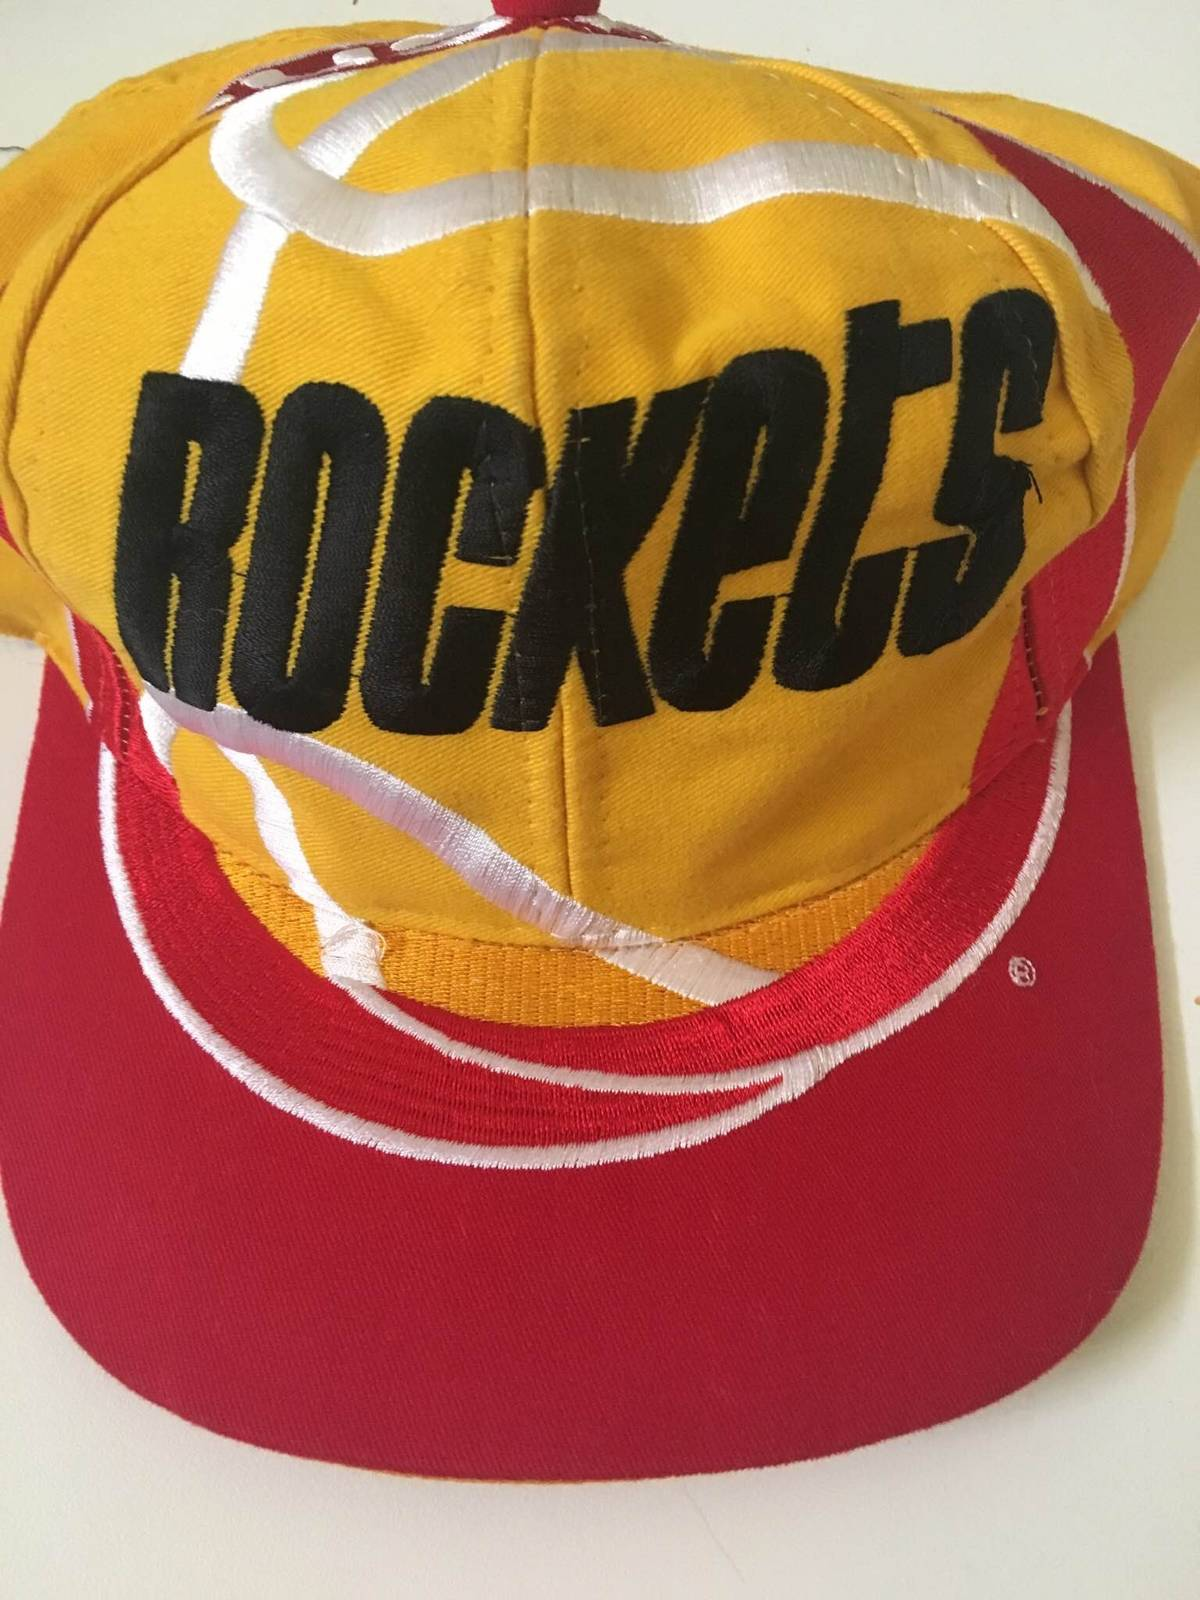 941a260a855 Nba RARE Houston Rockets Vintage Snapback Size one size - Hats for Sale -  Grailed